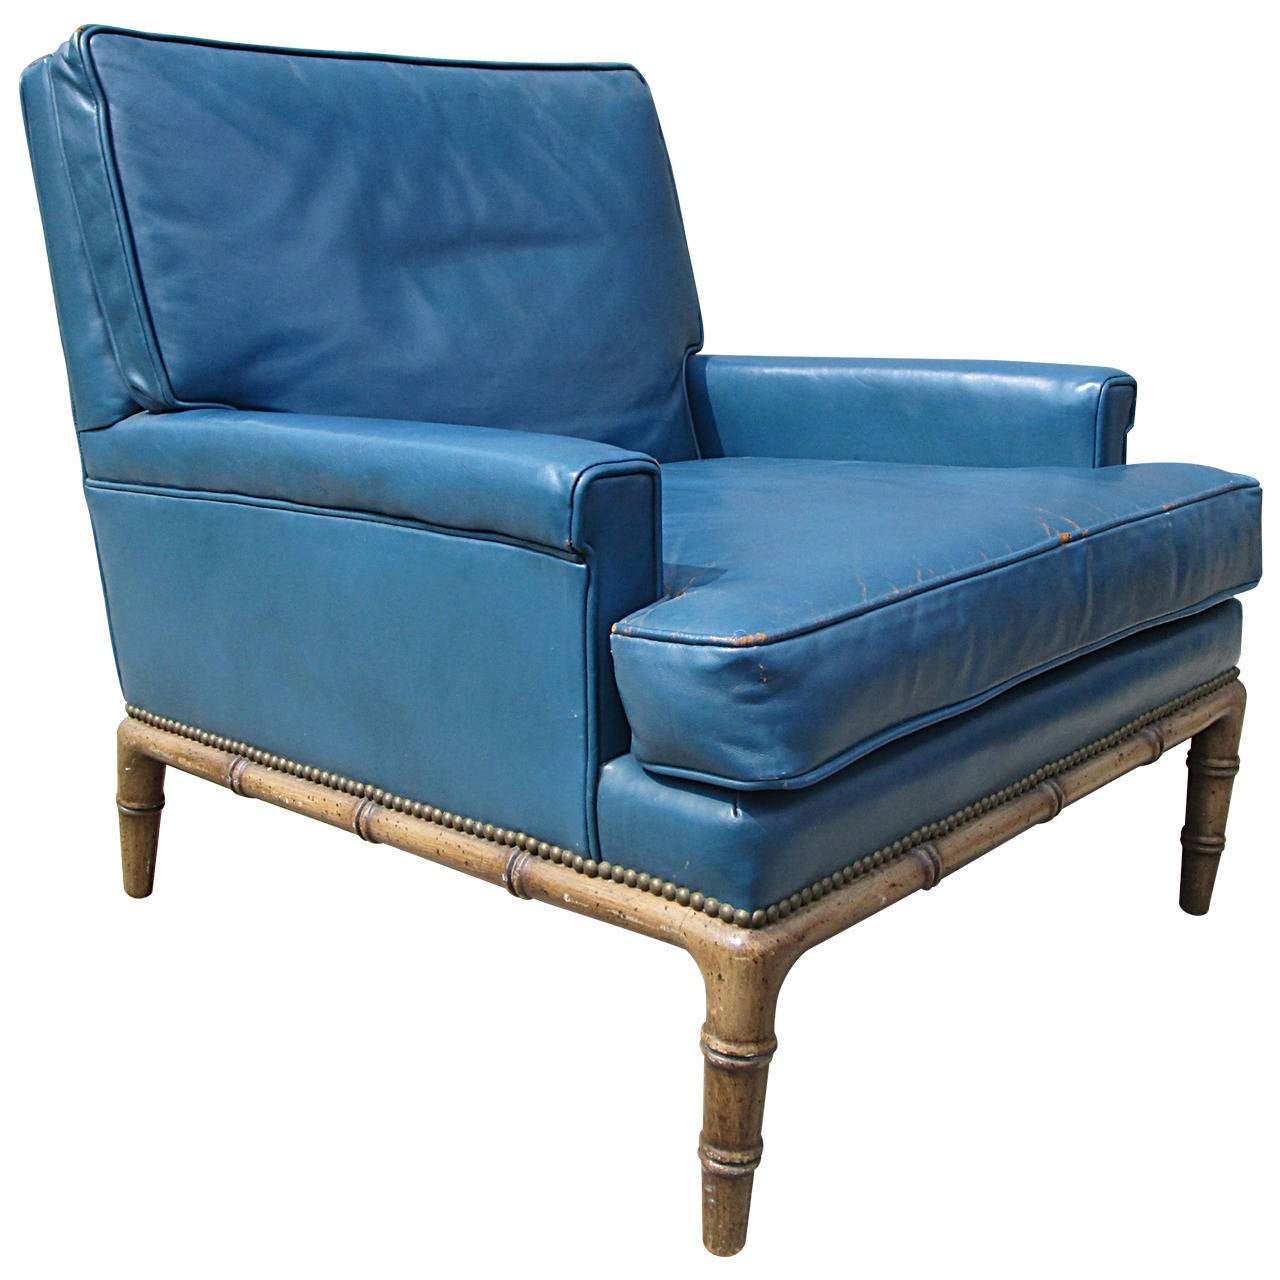 Blue Leather Club Chair Blue Leather Club Chair By Erwin Lambeth For Sale At 1stdibs